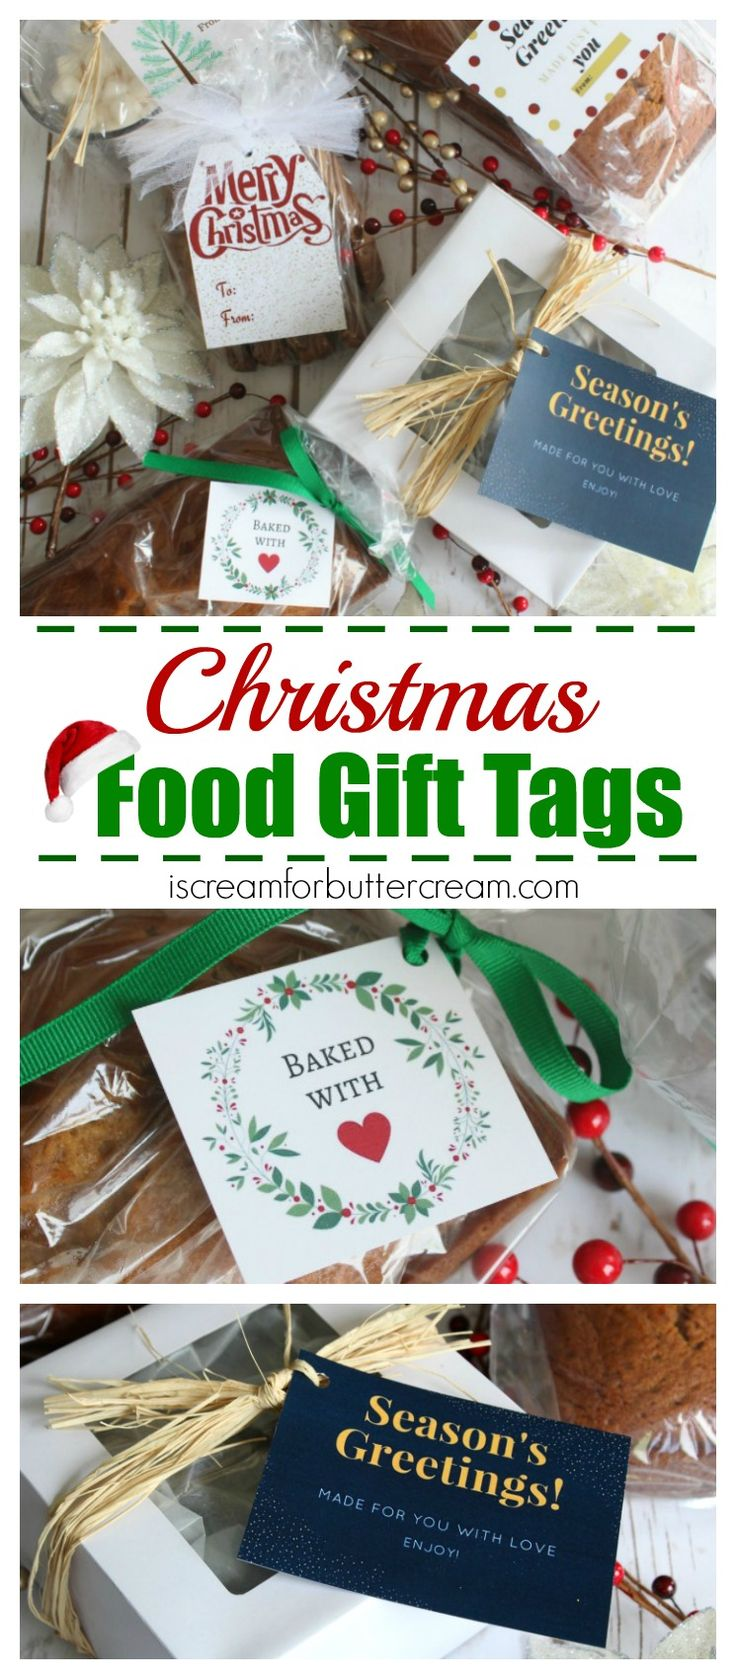 Free Printable Christmas Food Gift Tags. Give your edible gifts a sweet touch. Who doesn't love getting something yummy for Christmas!